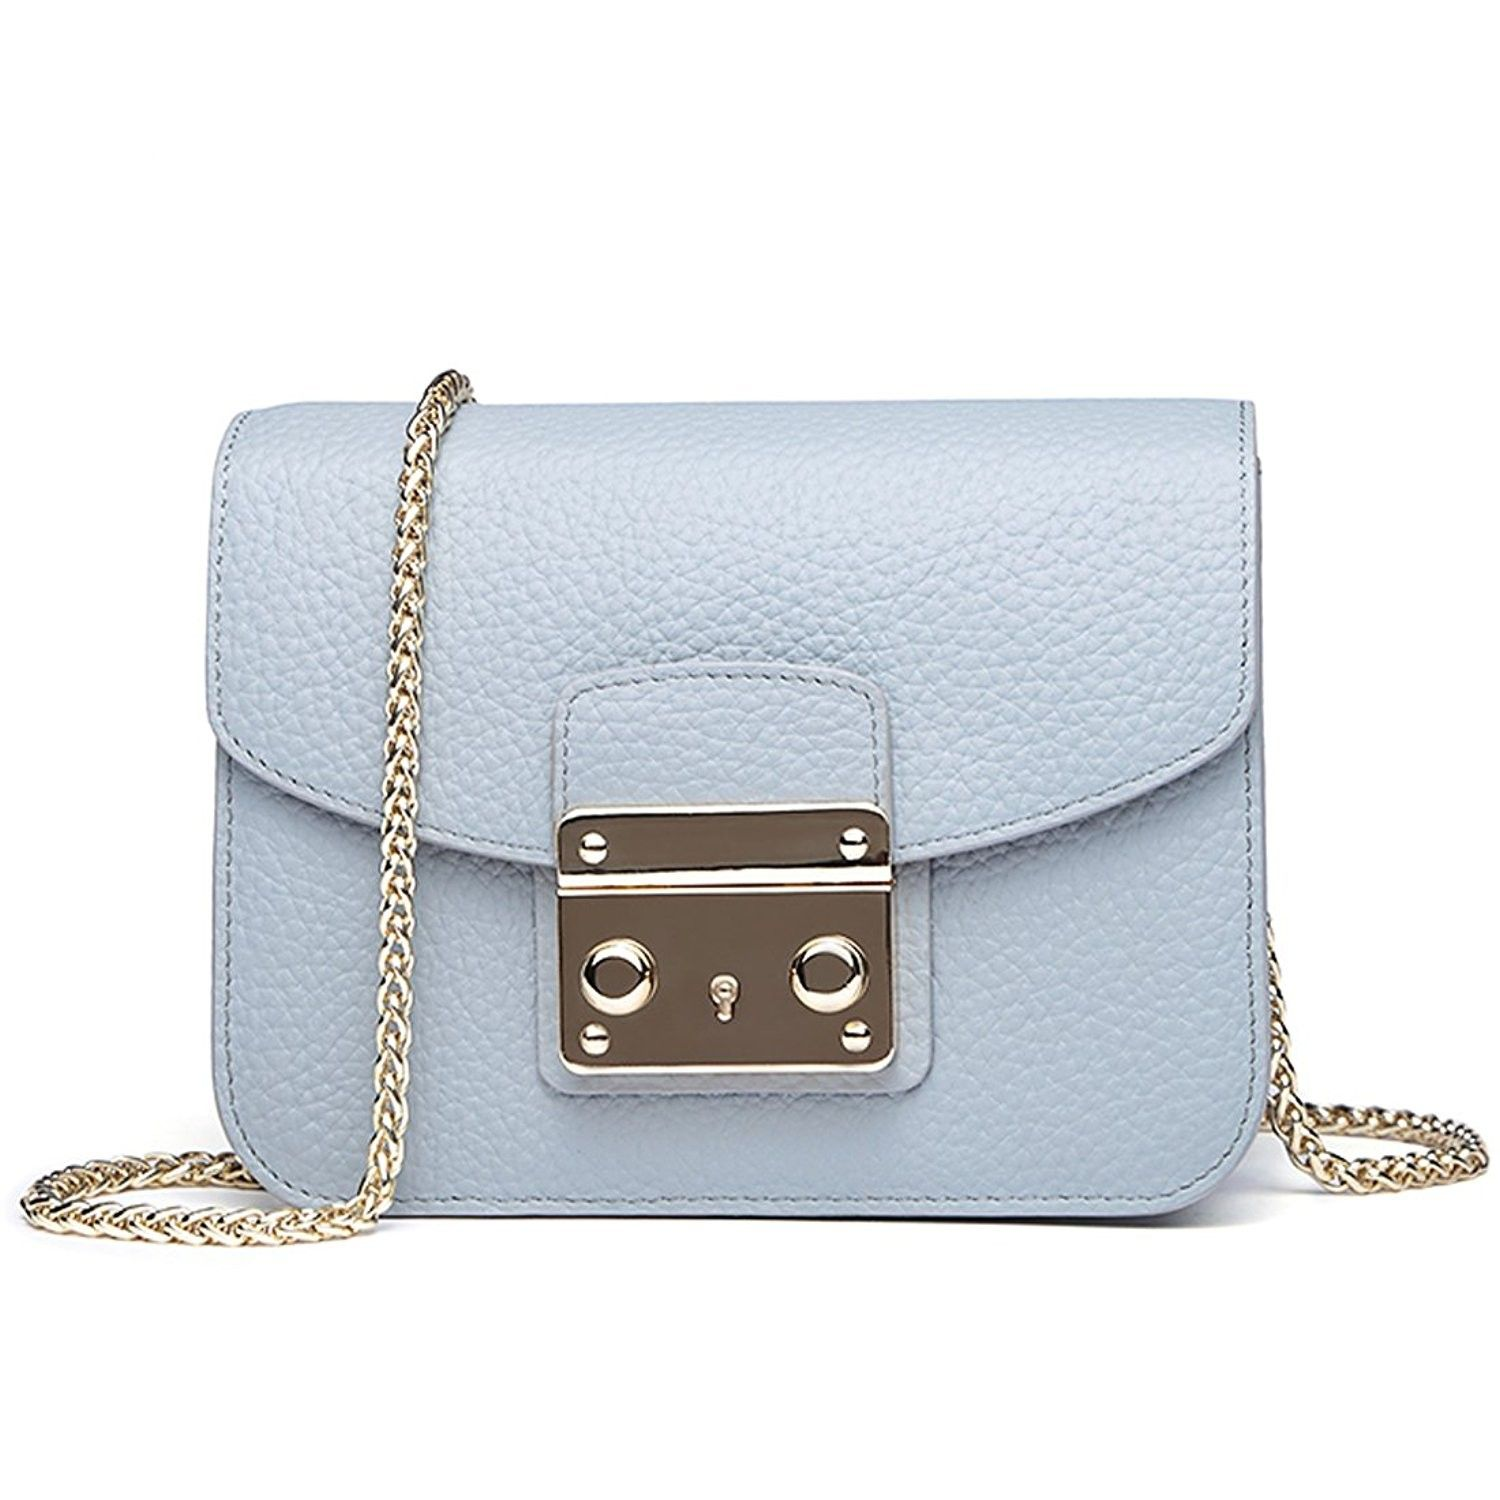 b836dedeb921 Classic Rfid Small Crossbody Bag for Women Leather Messenger Cell ...